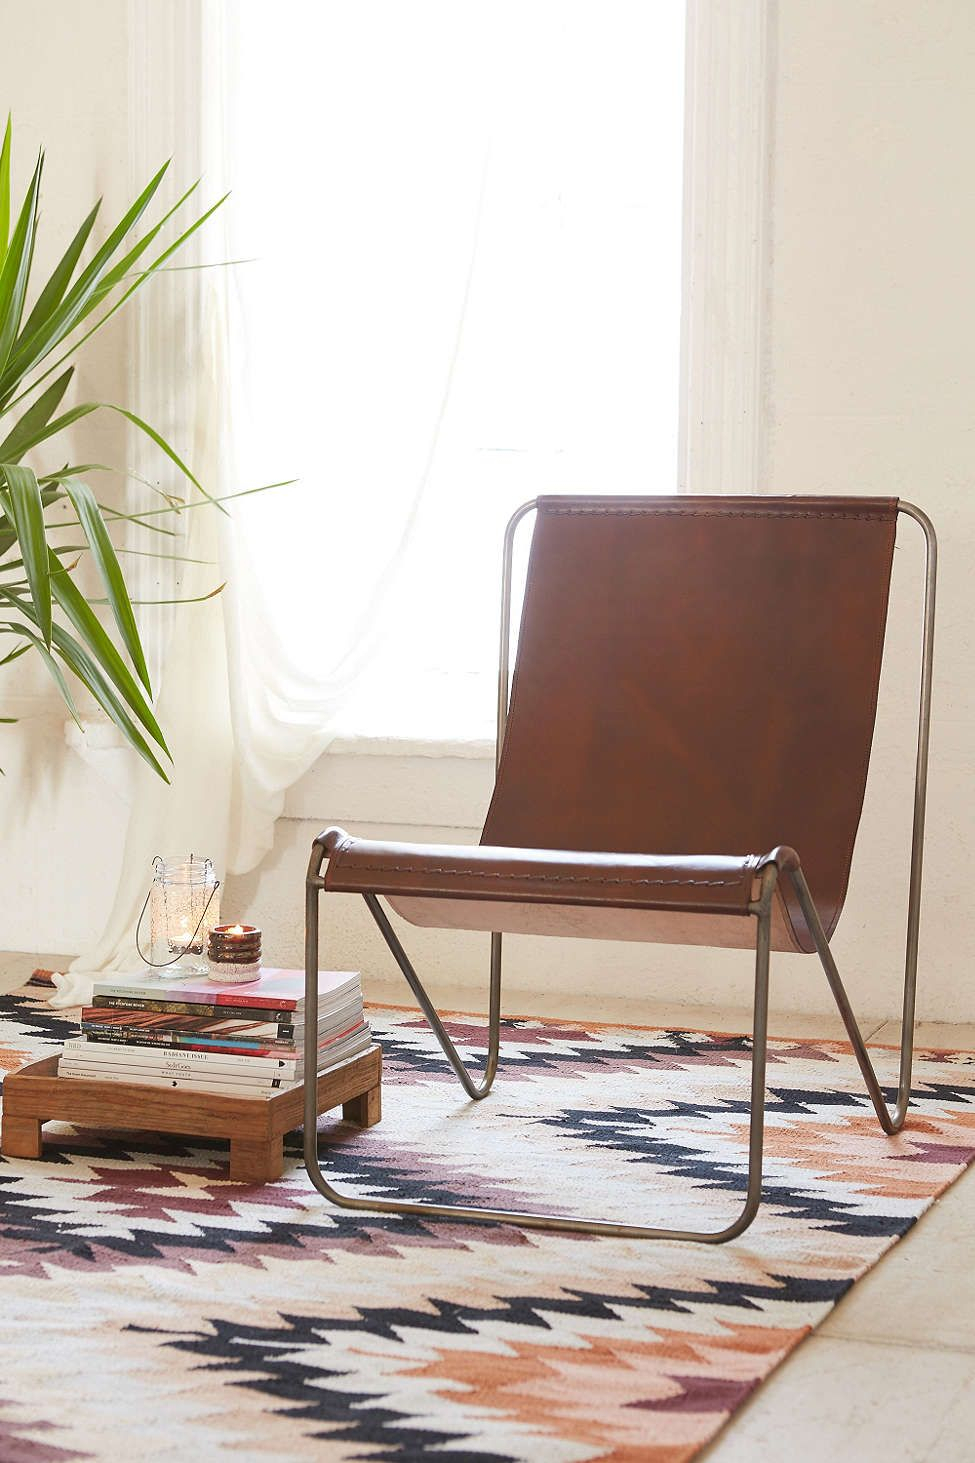 Maddox Leather Sling Chair | Chairs | Pinterest | Chair, Leather In Maddox Oversized Sofa Chairs (Image 10 of 25)